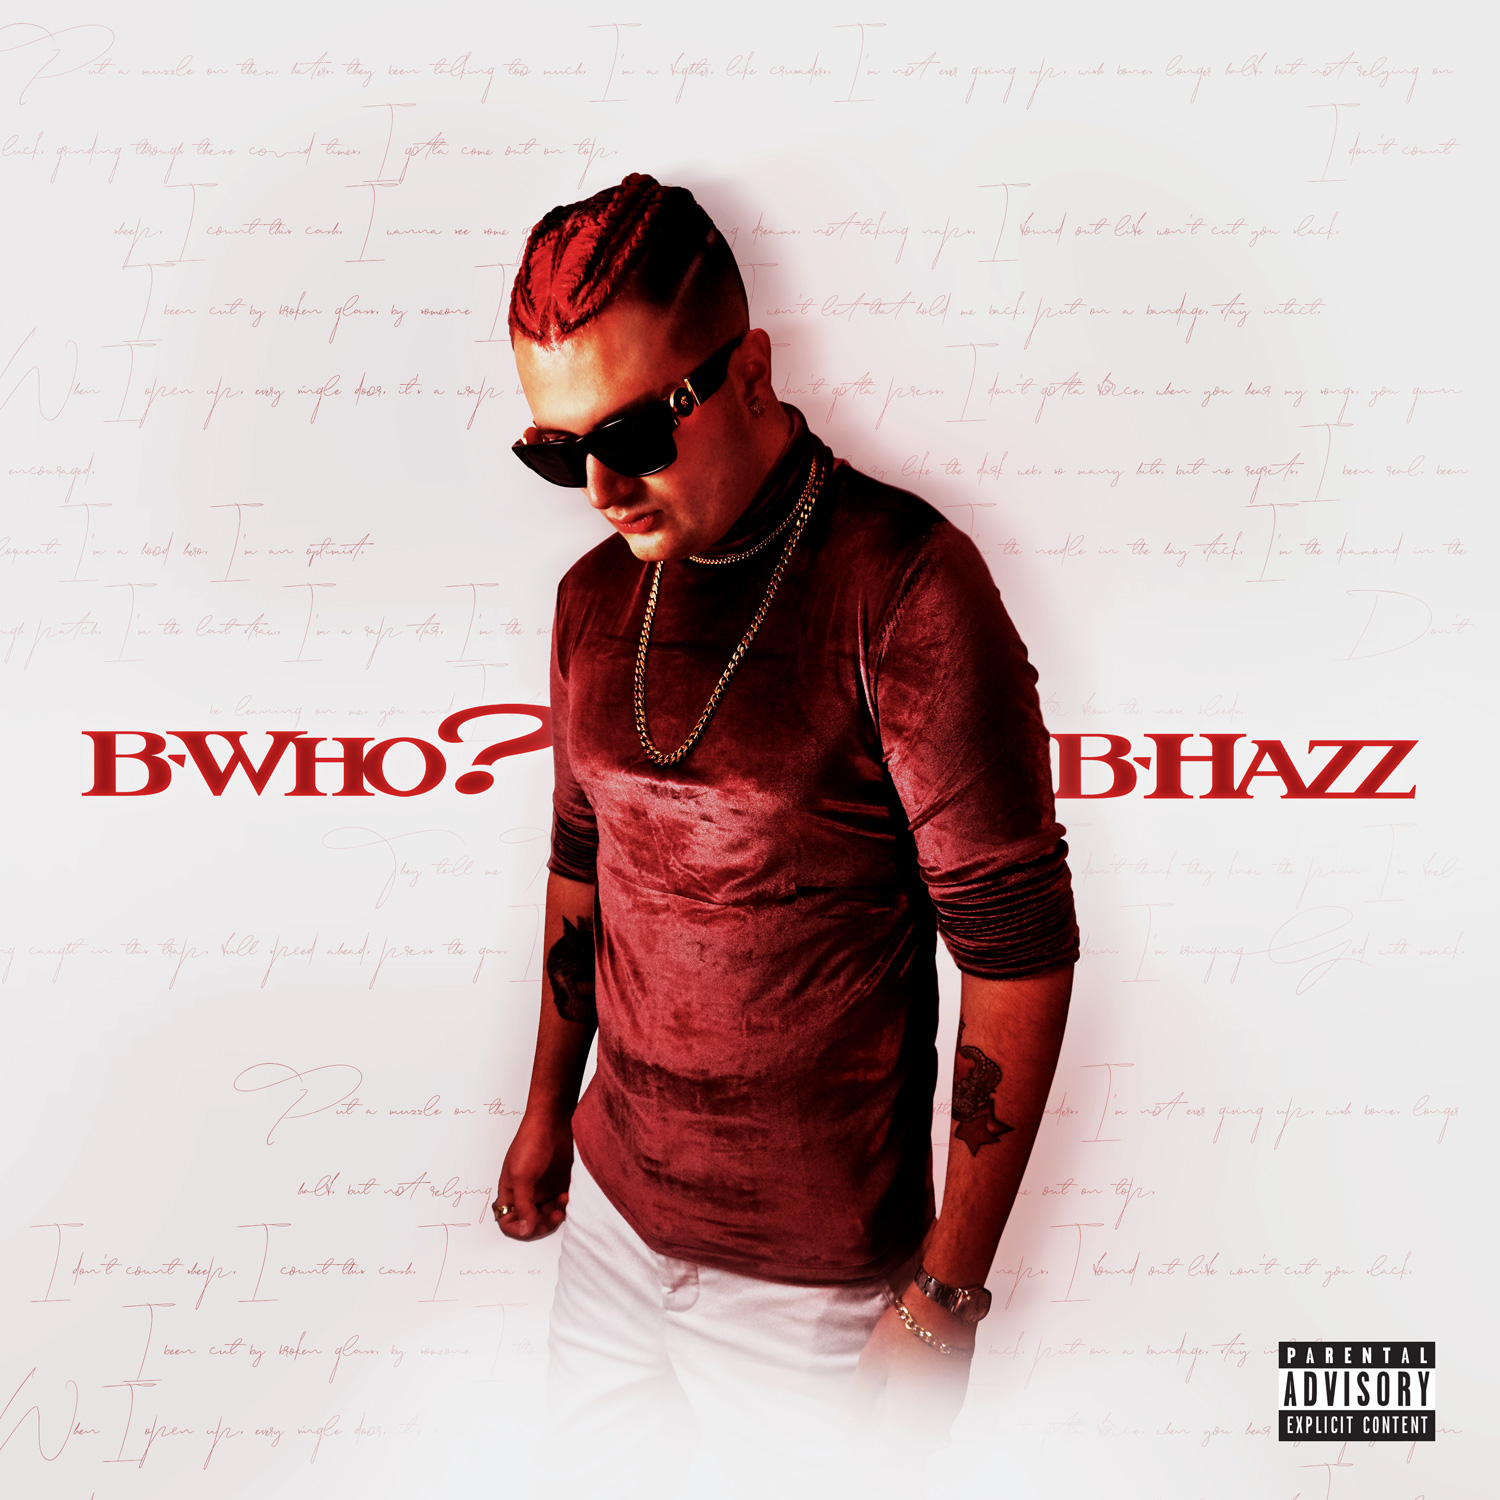 B-Who album art